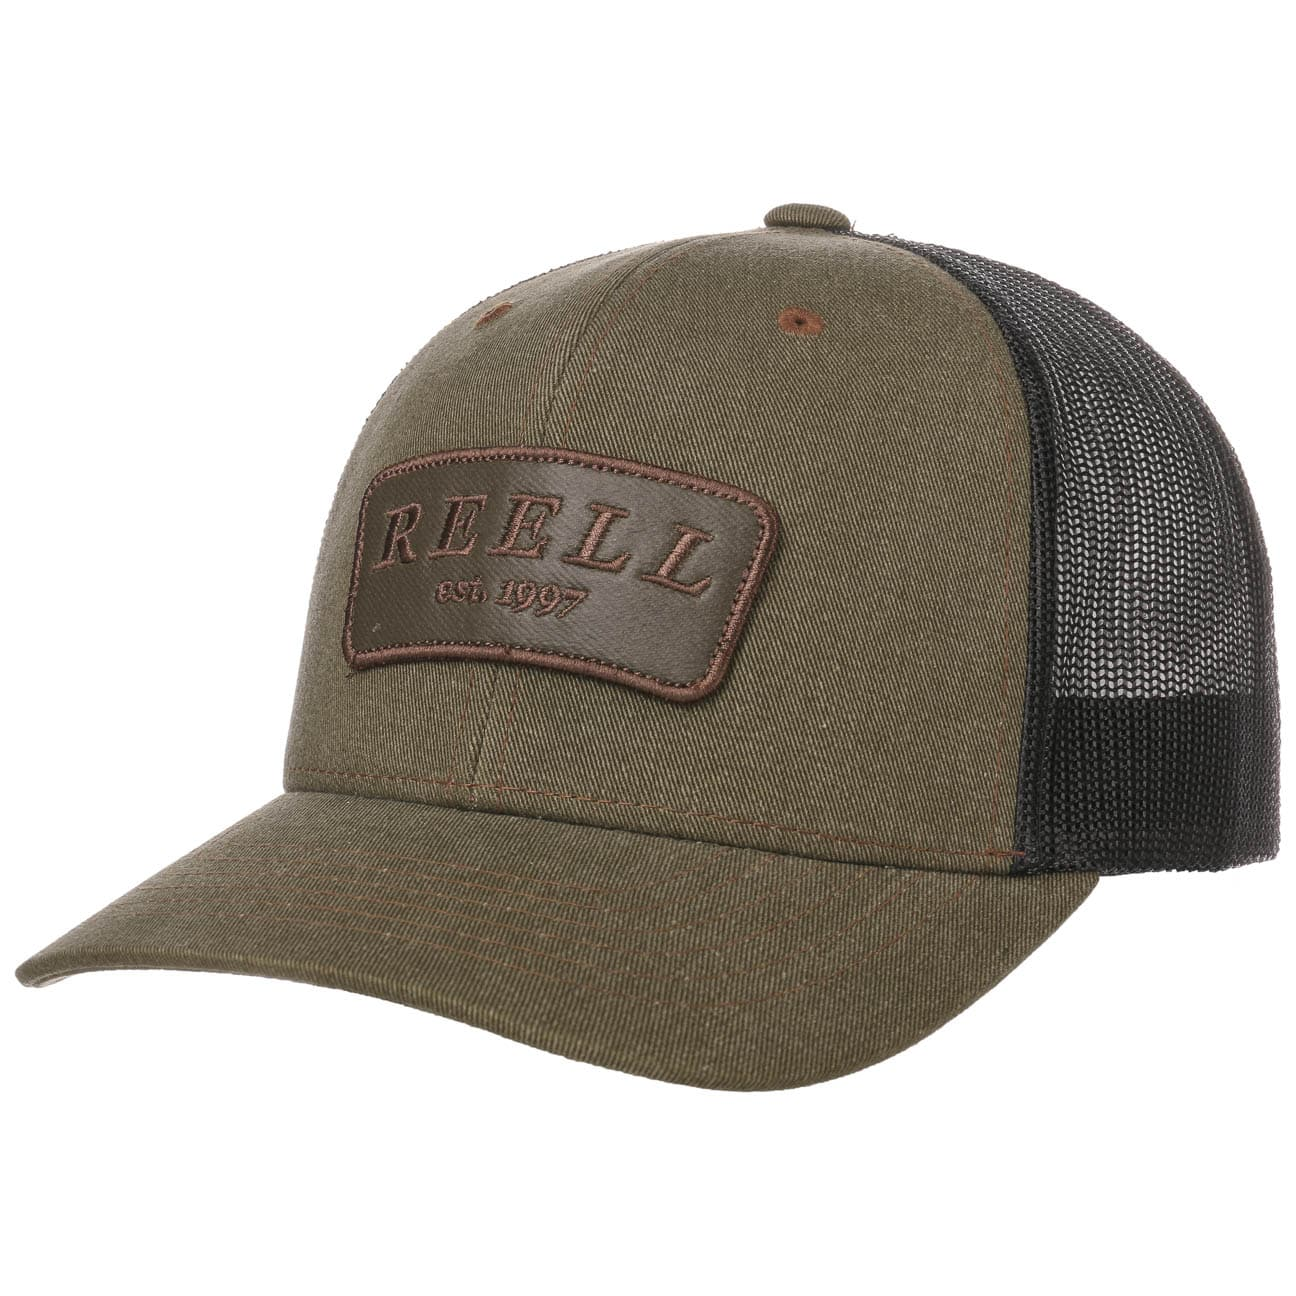 Gorra Trucker Curved by Reell